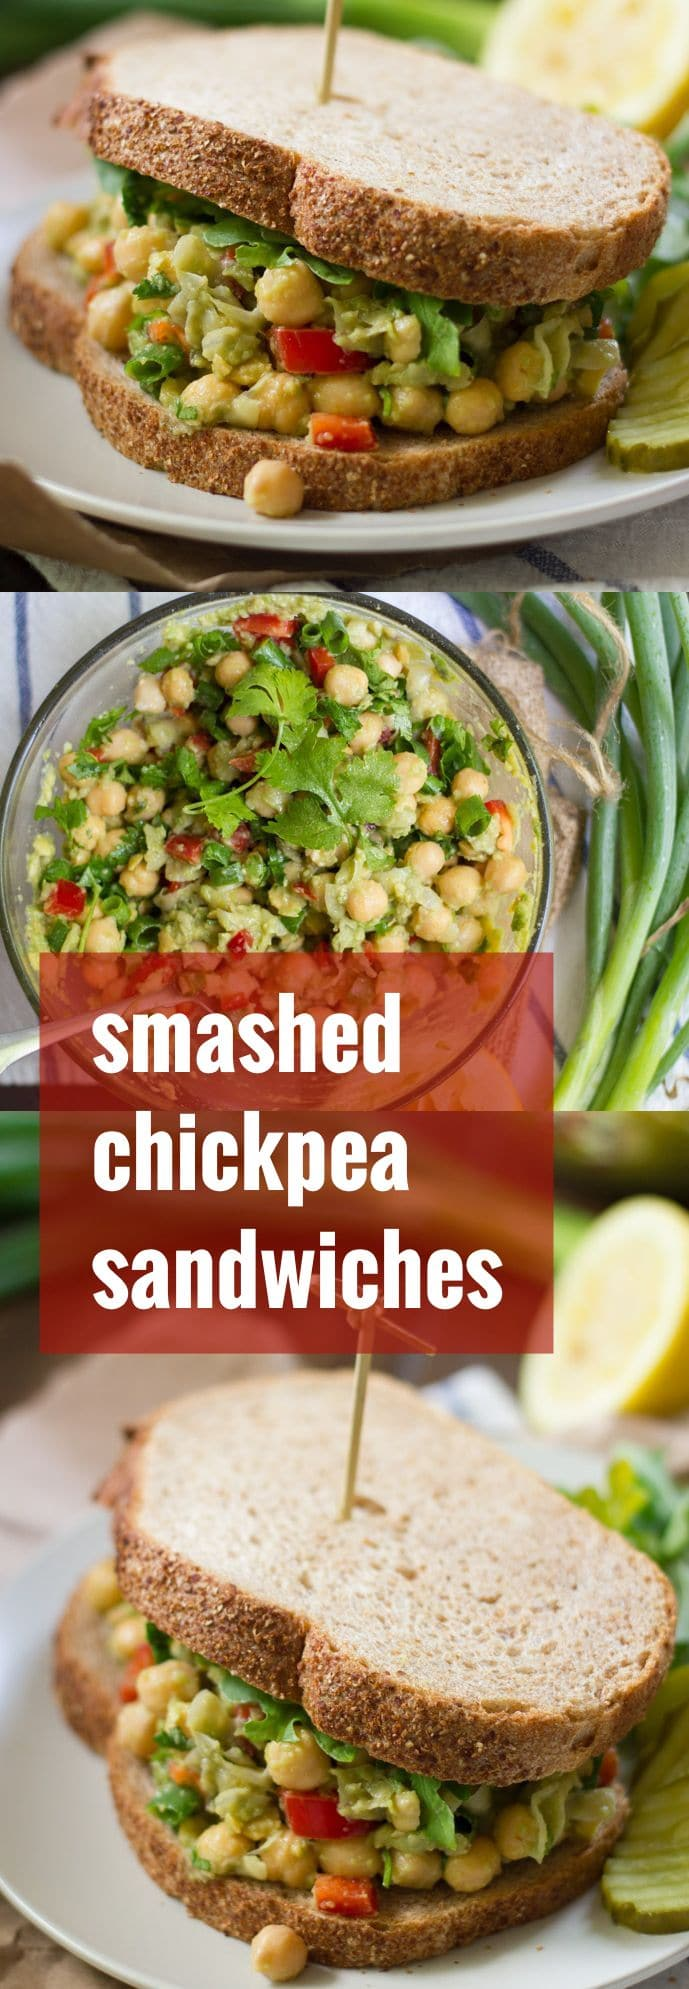 Smashed Chickpea Sandwiches